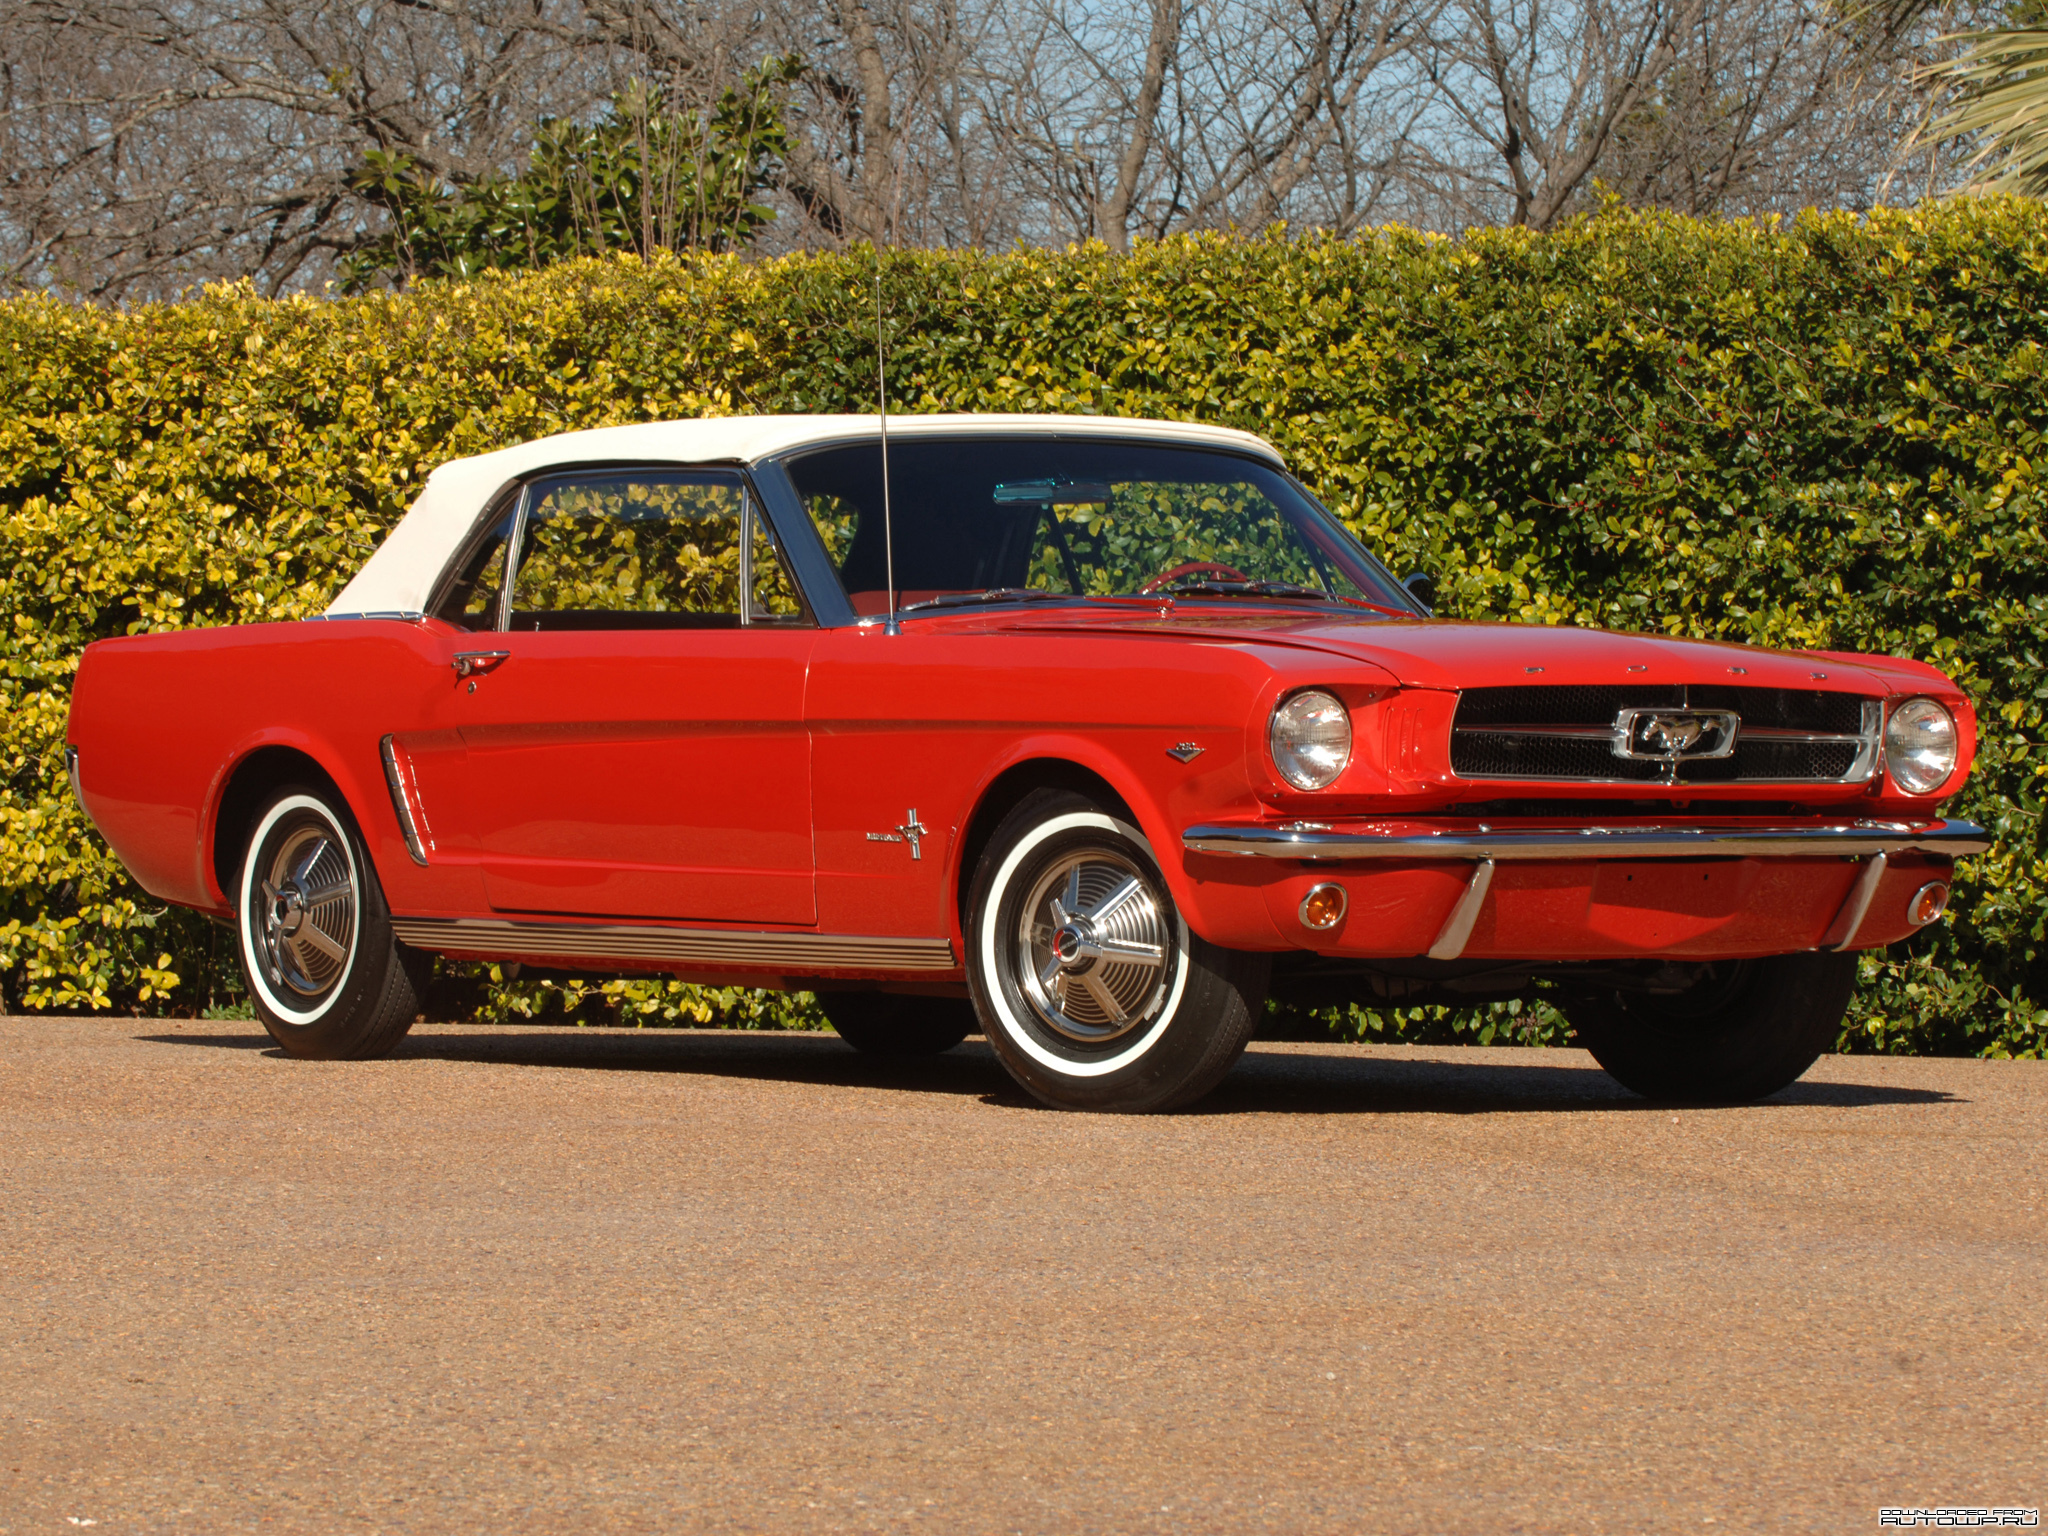 Amazing 1964 Ford Mustang Pictures & Backgrounds